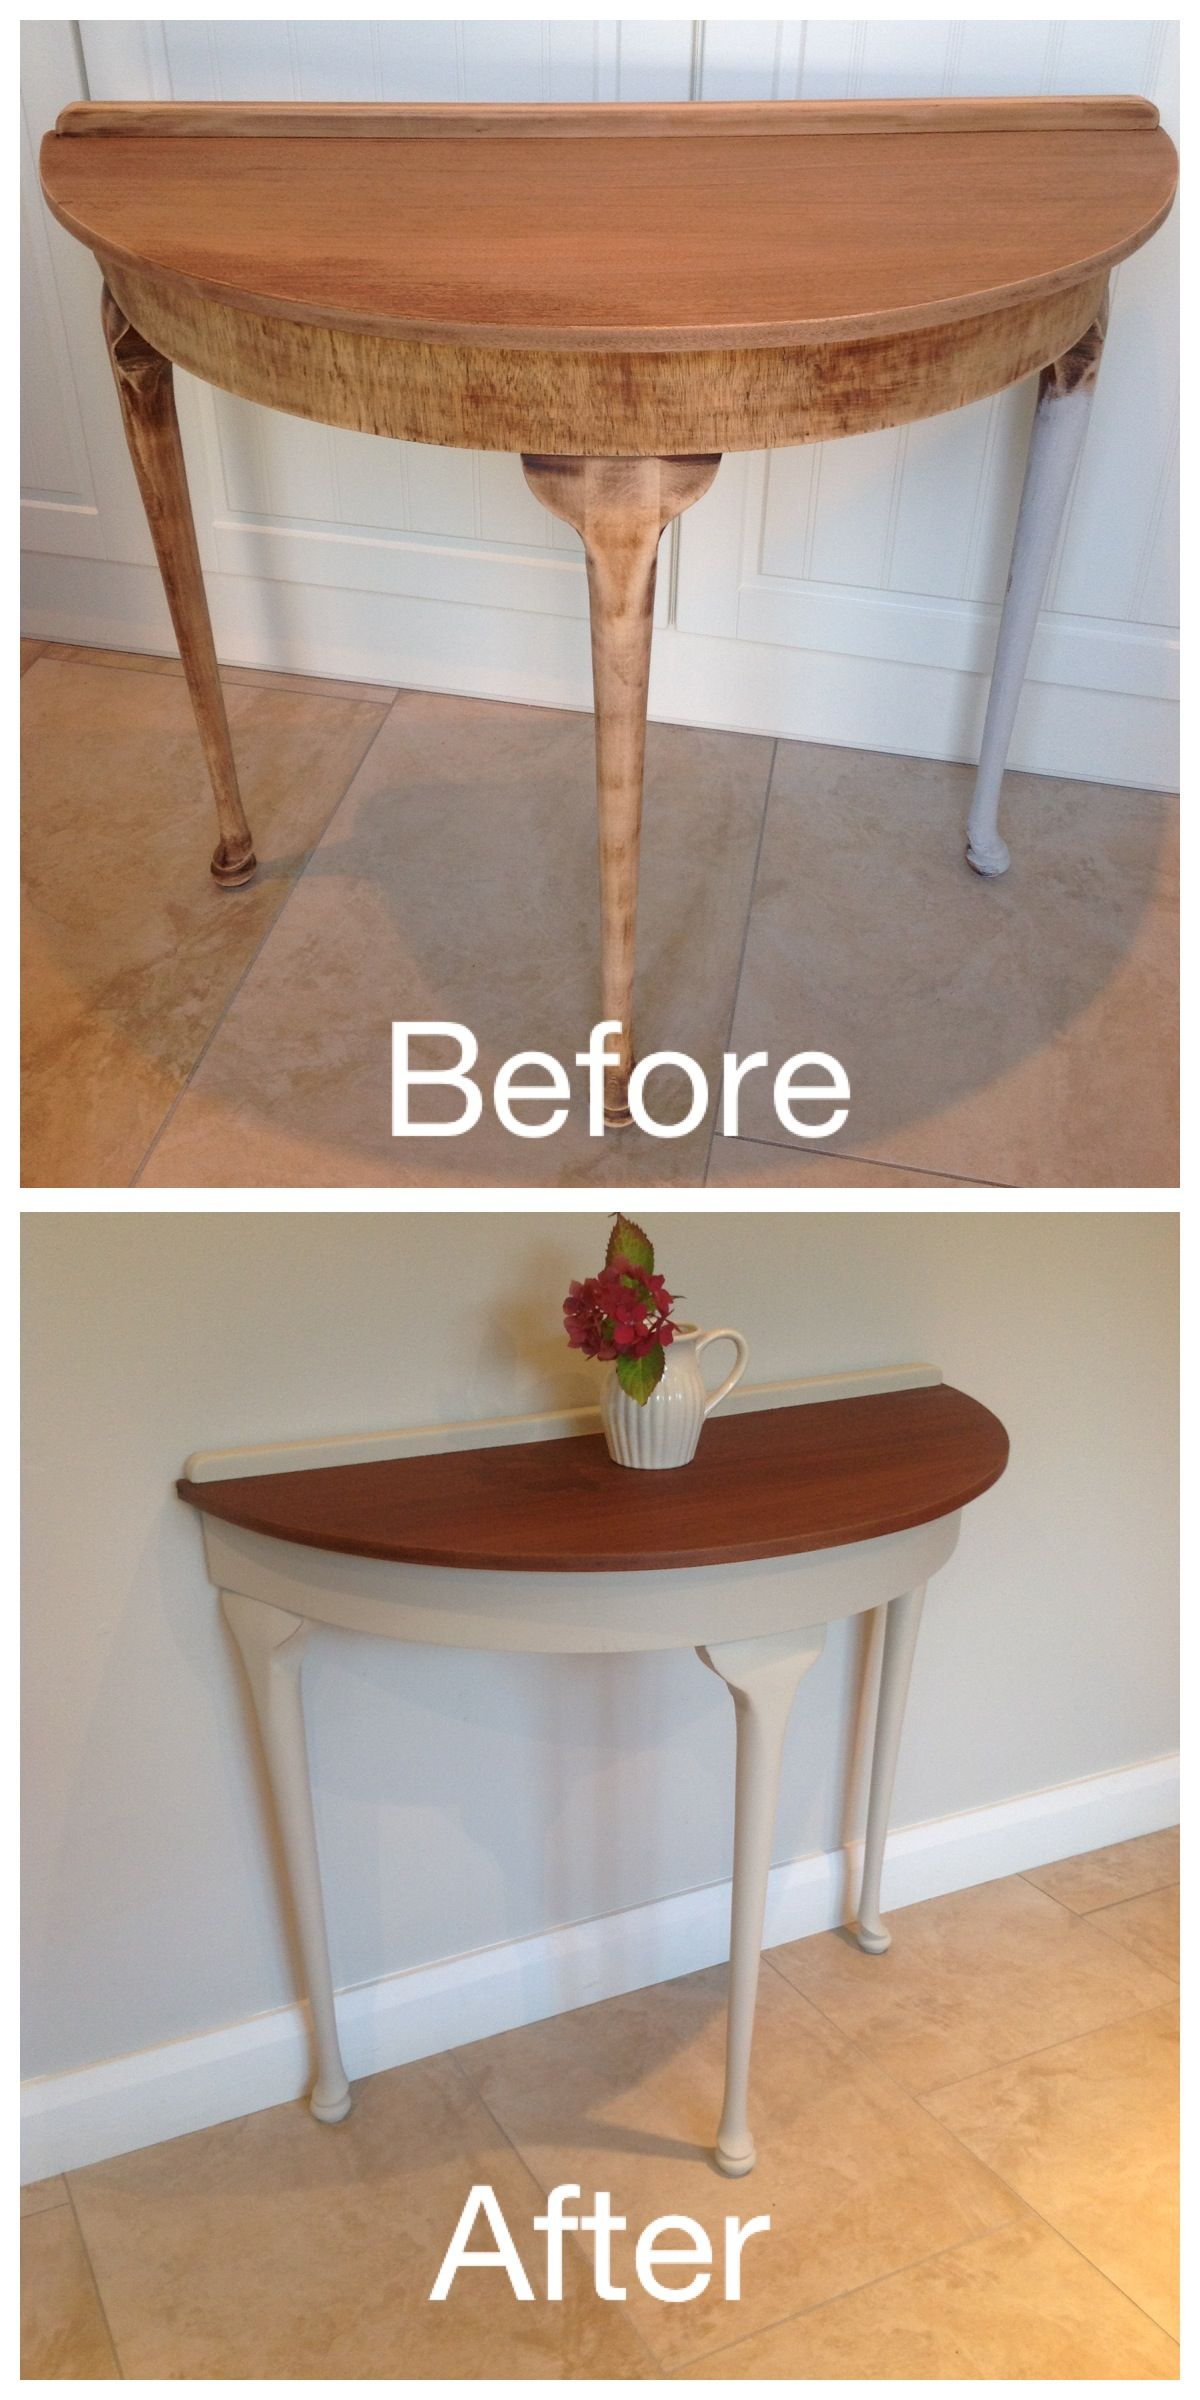 Mahogany Half Moon Table Painted In Autentico Almond Chalk Paint. Table Top  Dark Waxed And